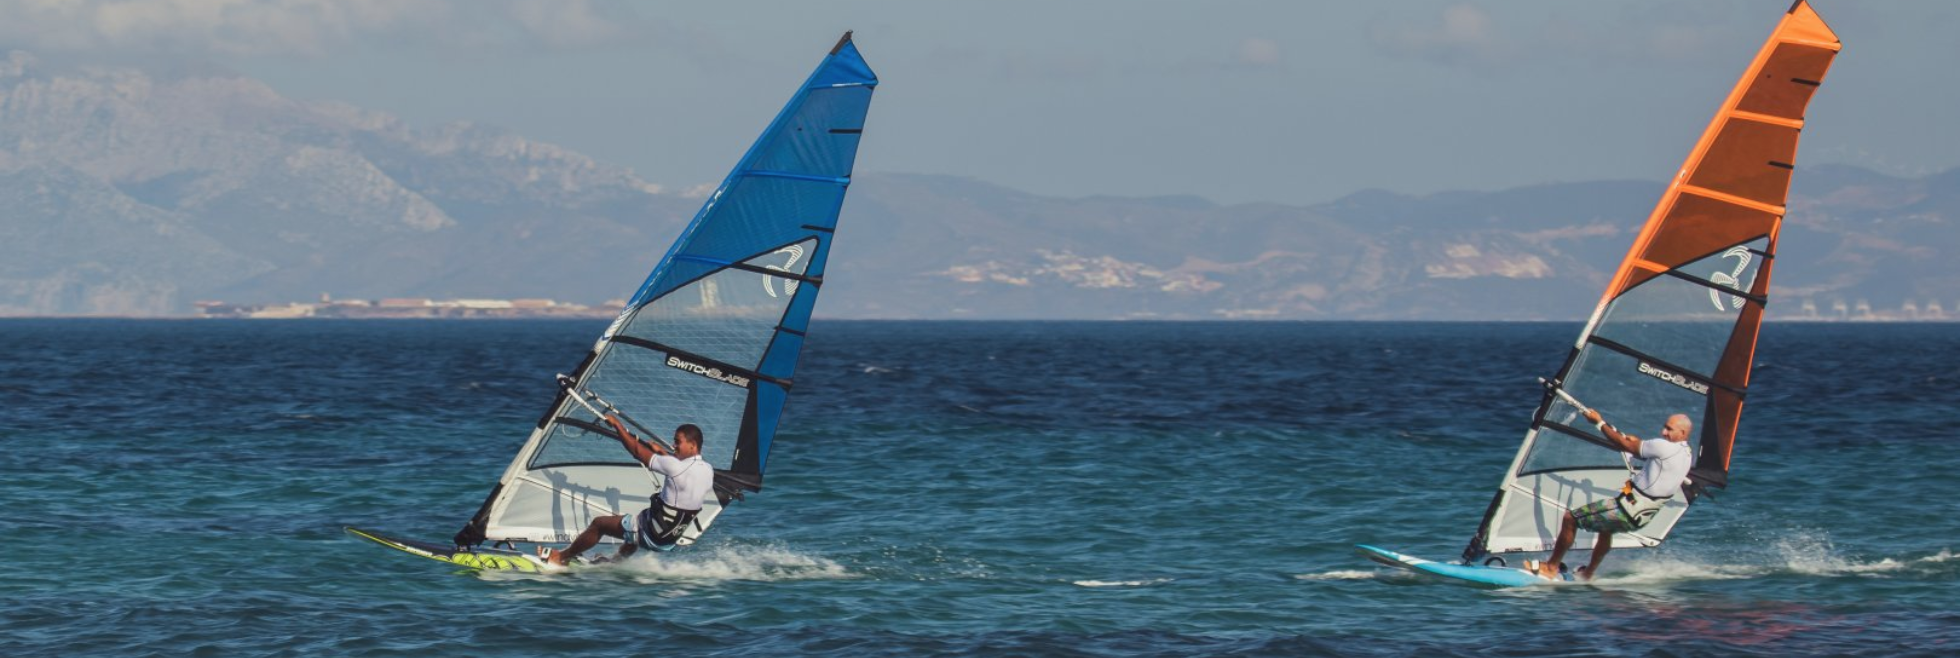 Alquiler material windsurf tarifa windsurf rental Sportlink Pro Center